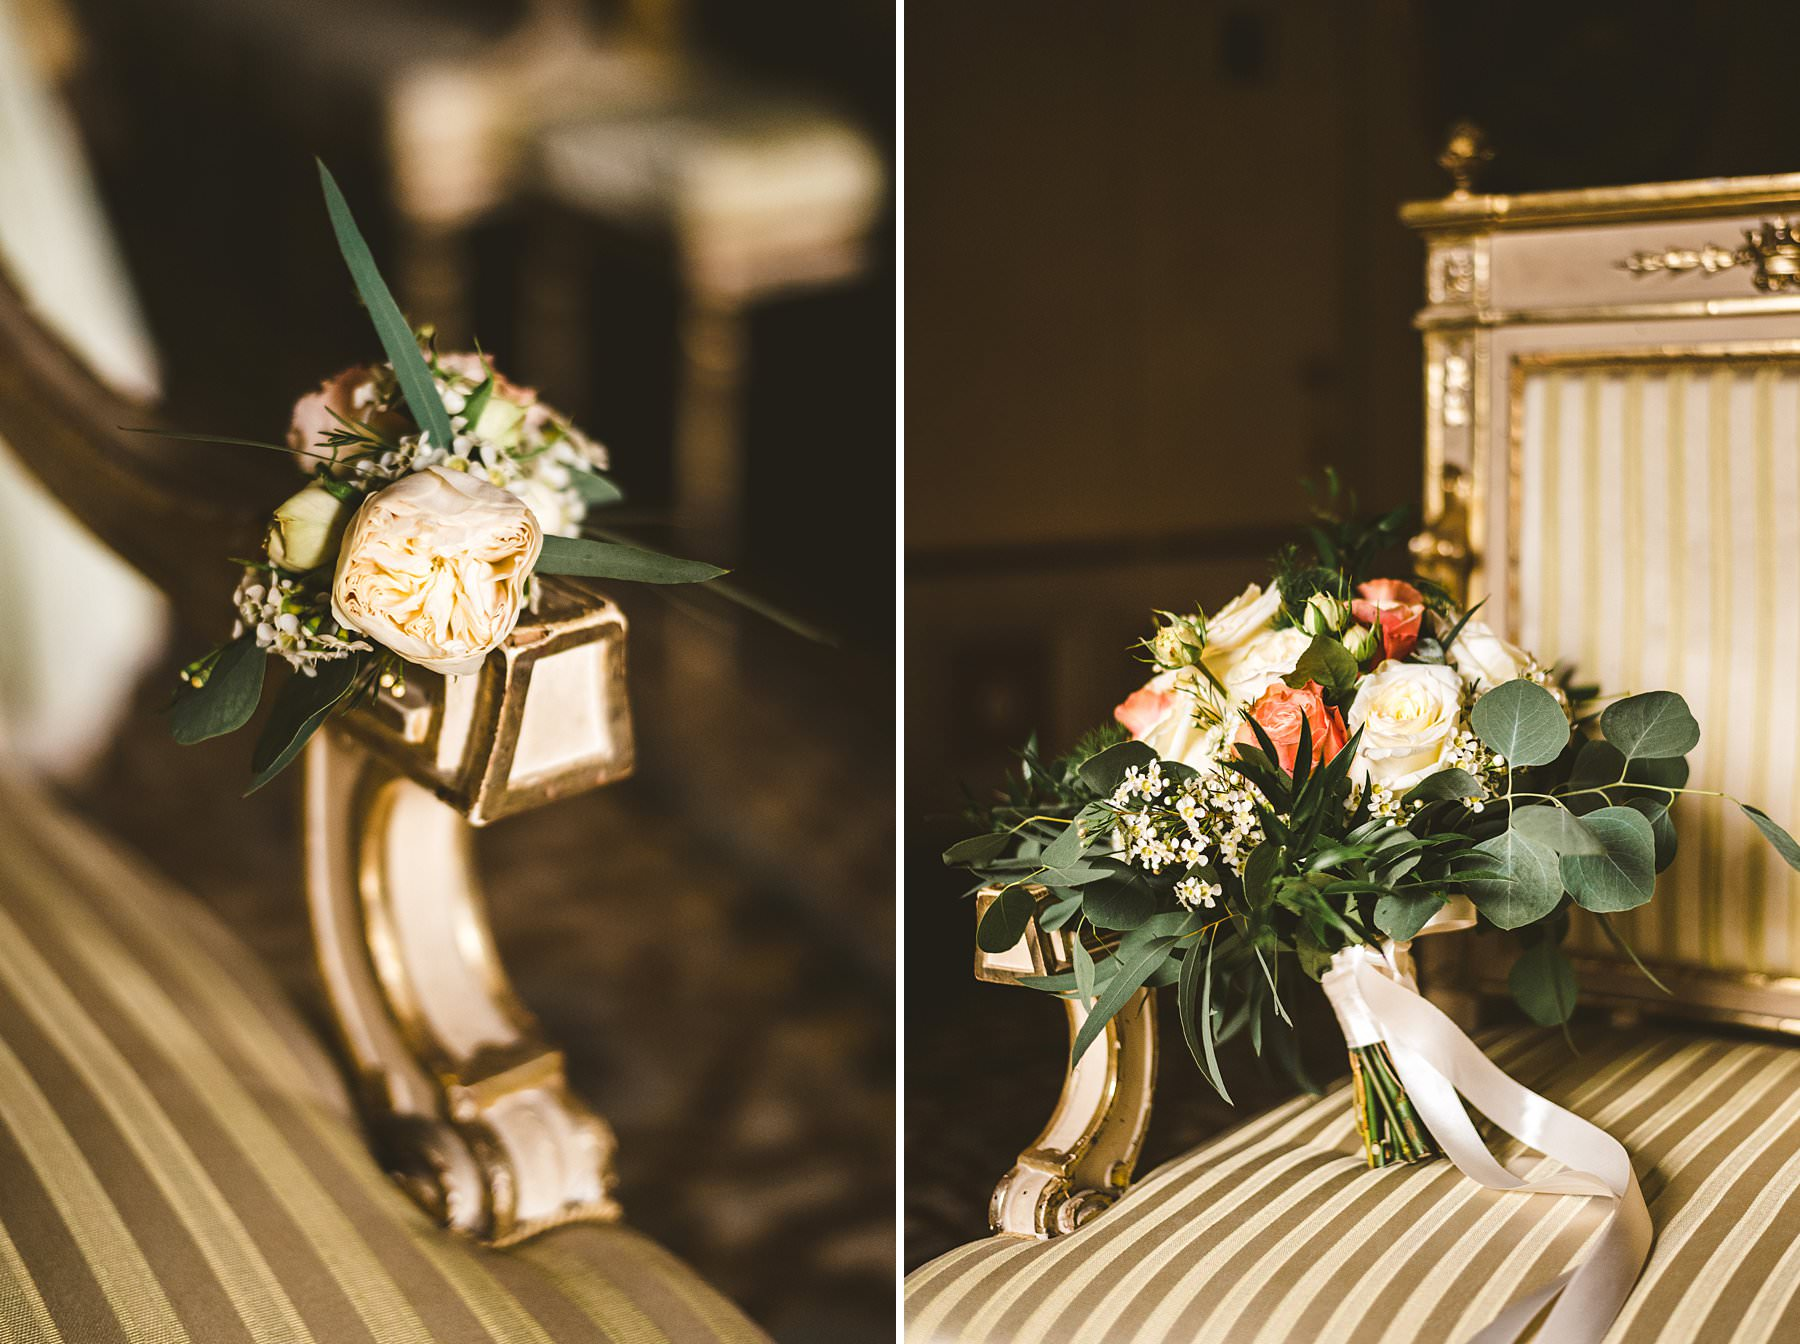 Lovely flowers for an intimate destination wedding elopement in Italy at Siena